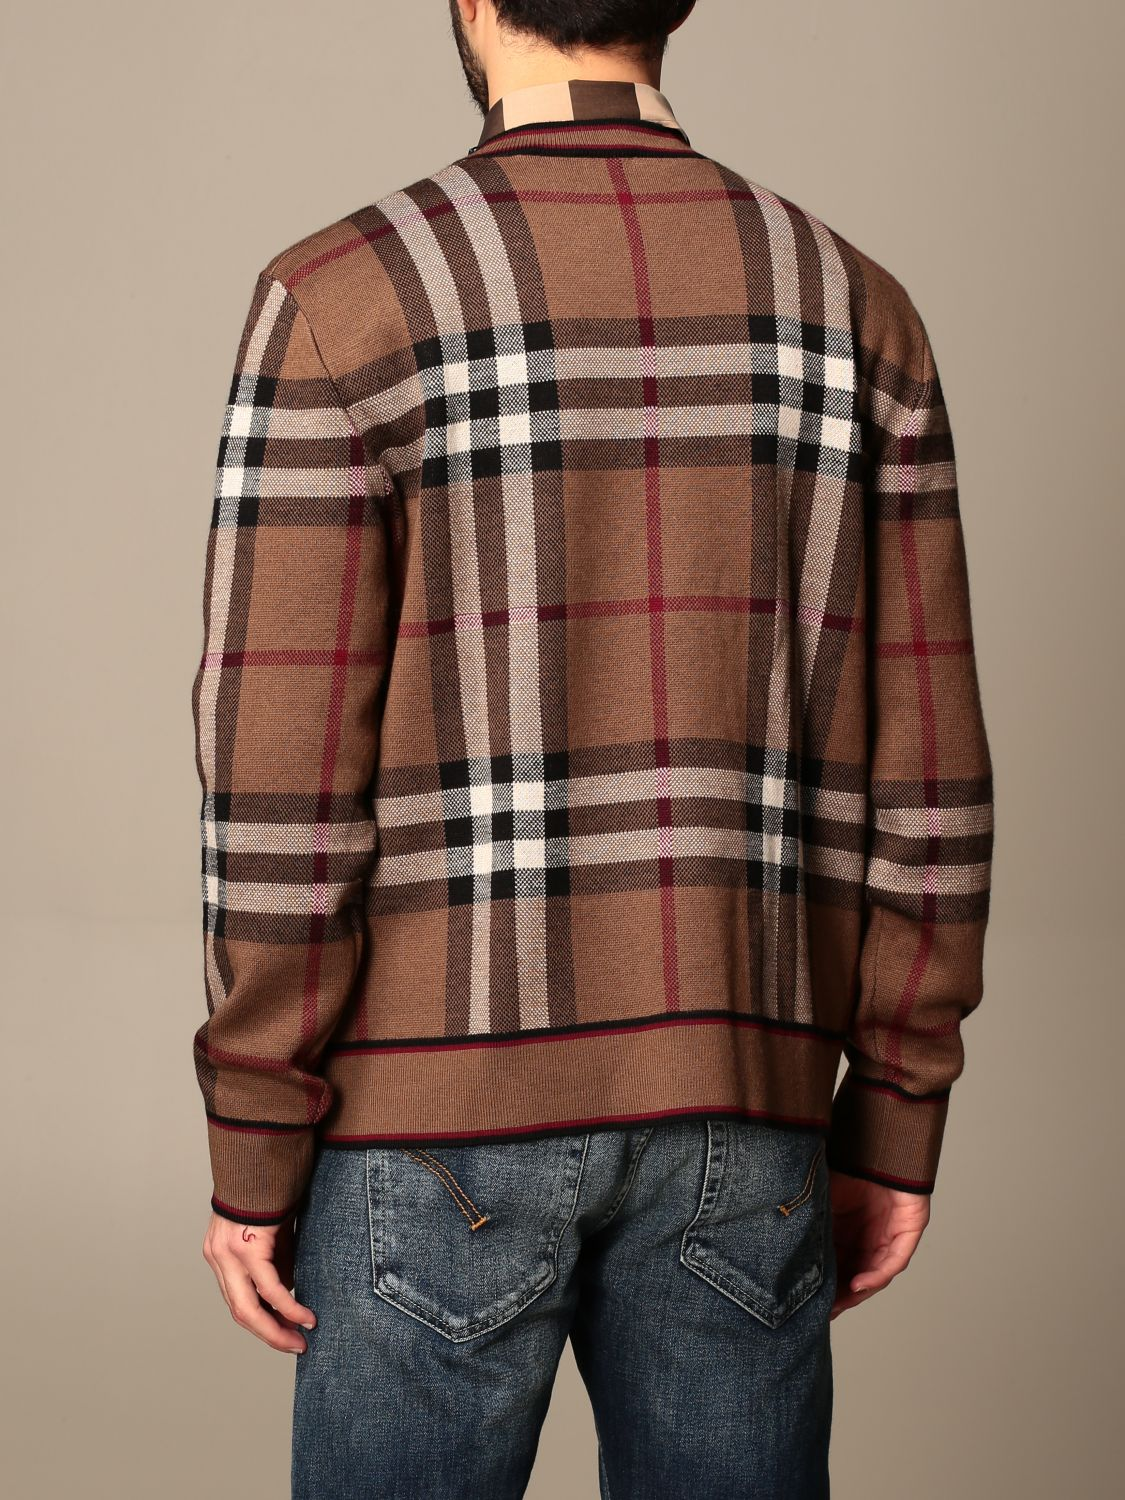 Jumper Burberry: Burberry pullover in Merino wool with tartan motif and jacquard pattern beige 3